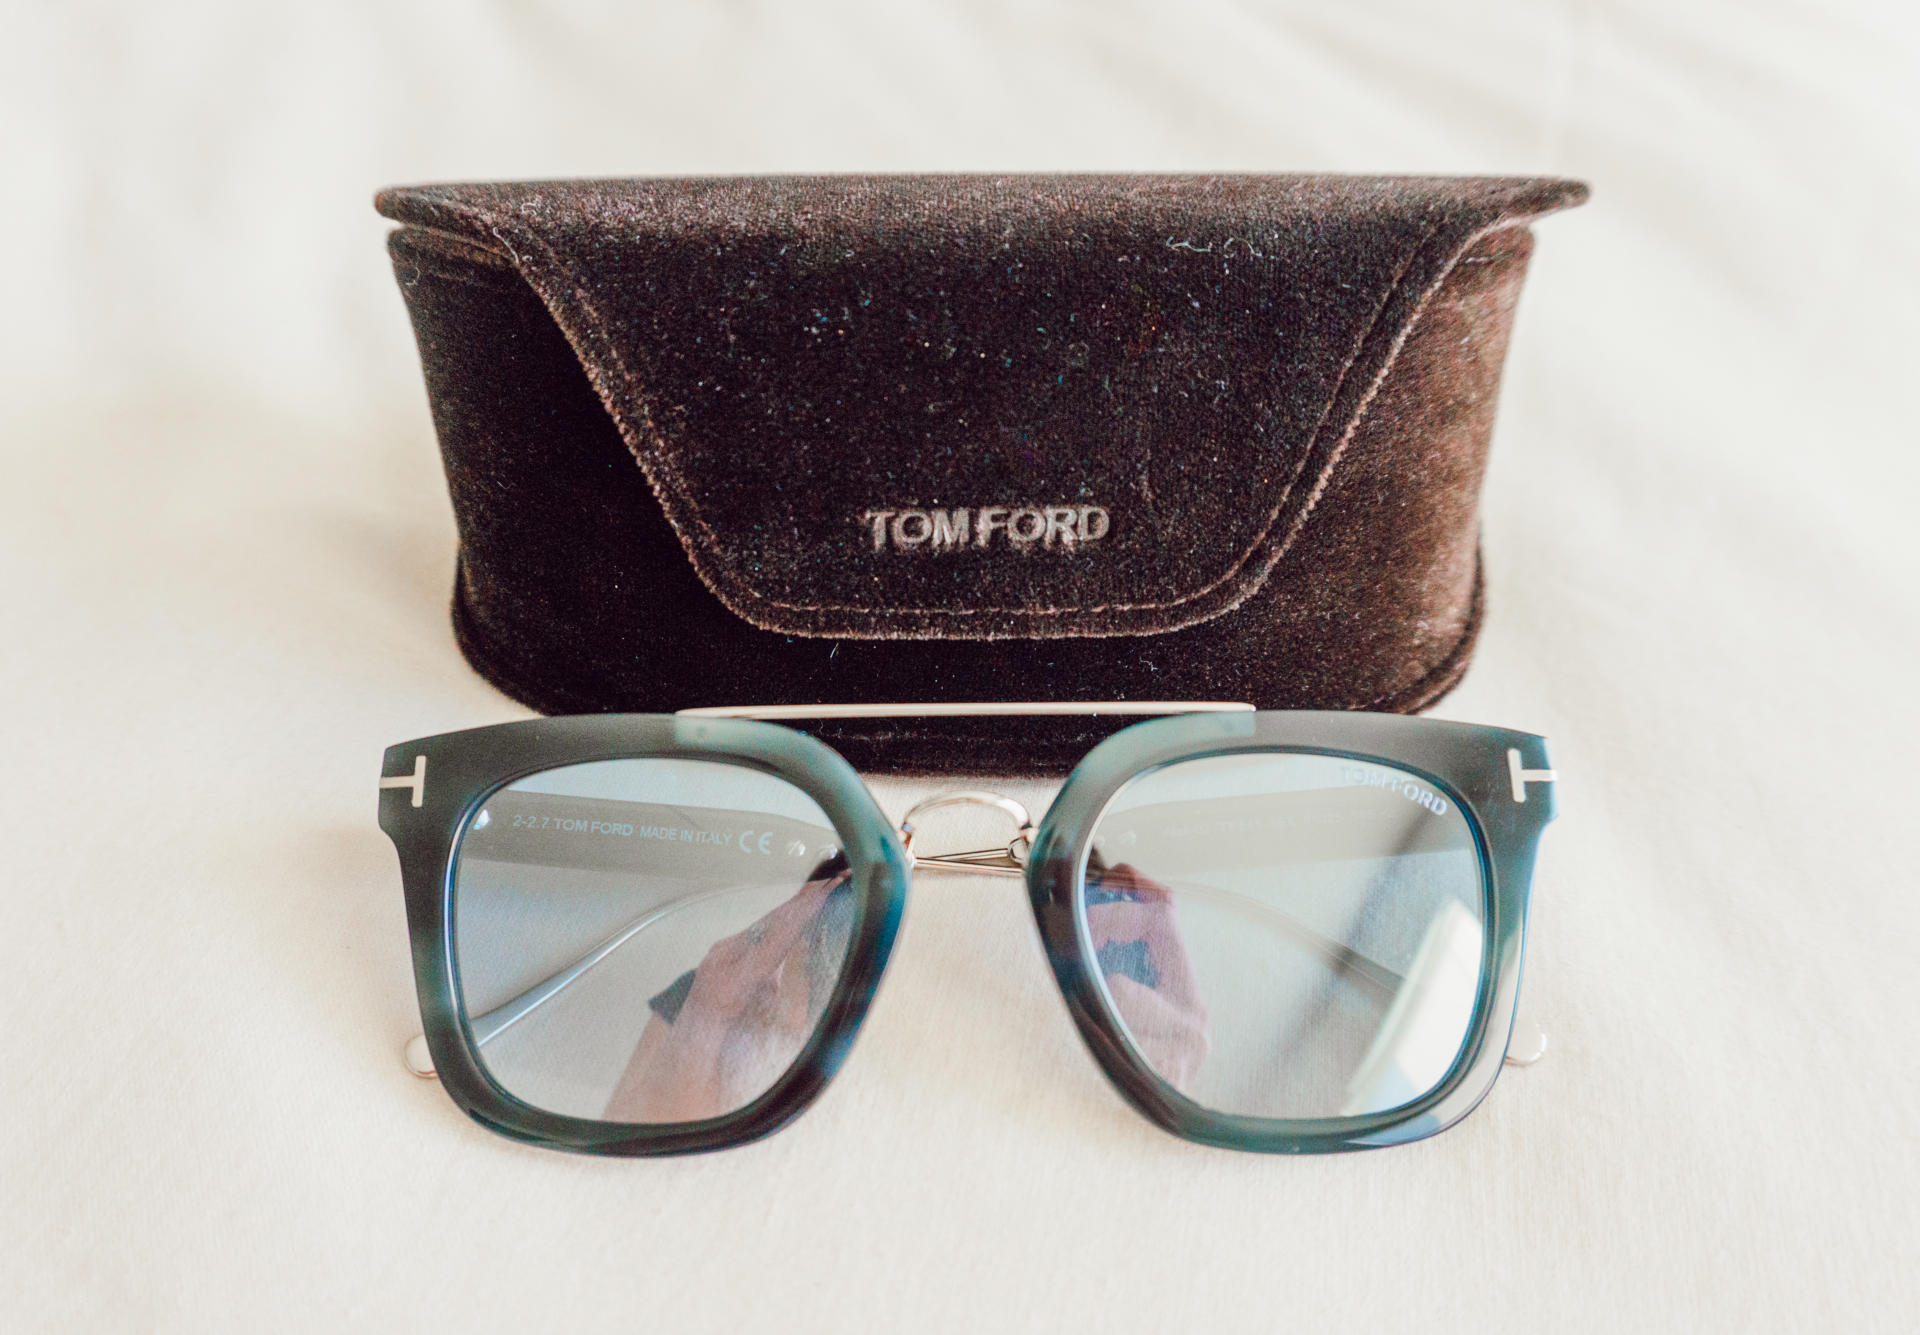 672f37e3c7 Review  Discounted Tom Ford Sunglasses from Smart Buy Glasses - Abby ...